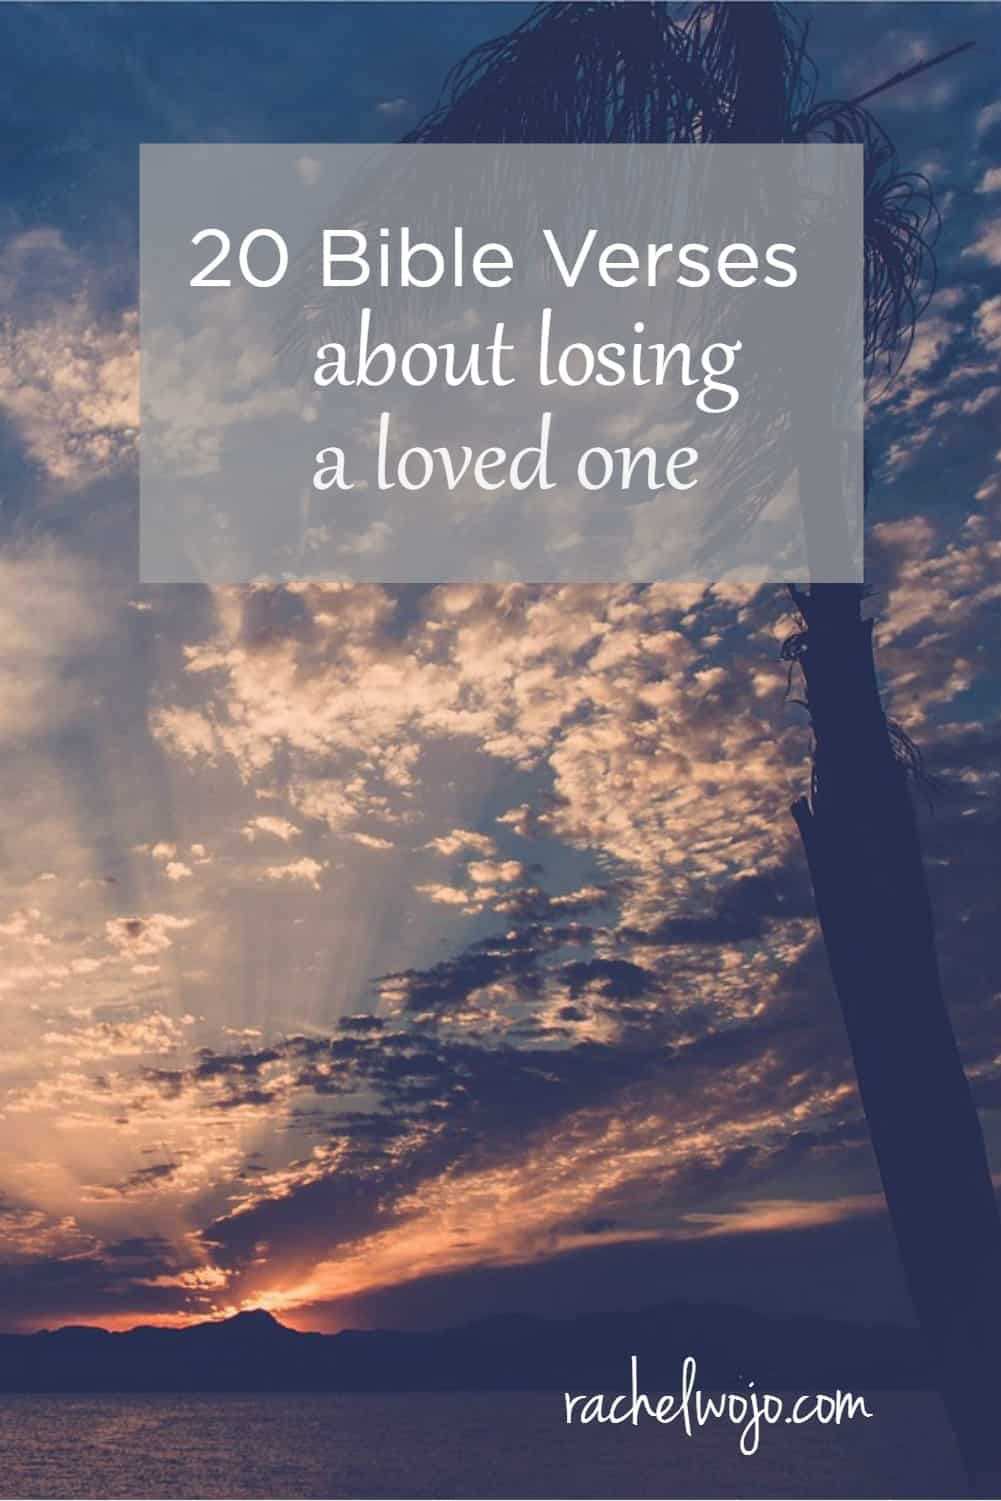 20 Bible Verses About Losing a Loved One